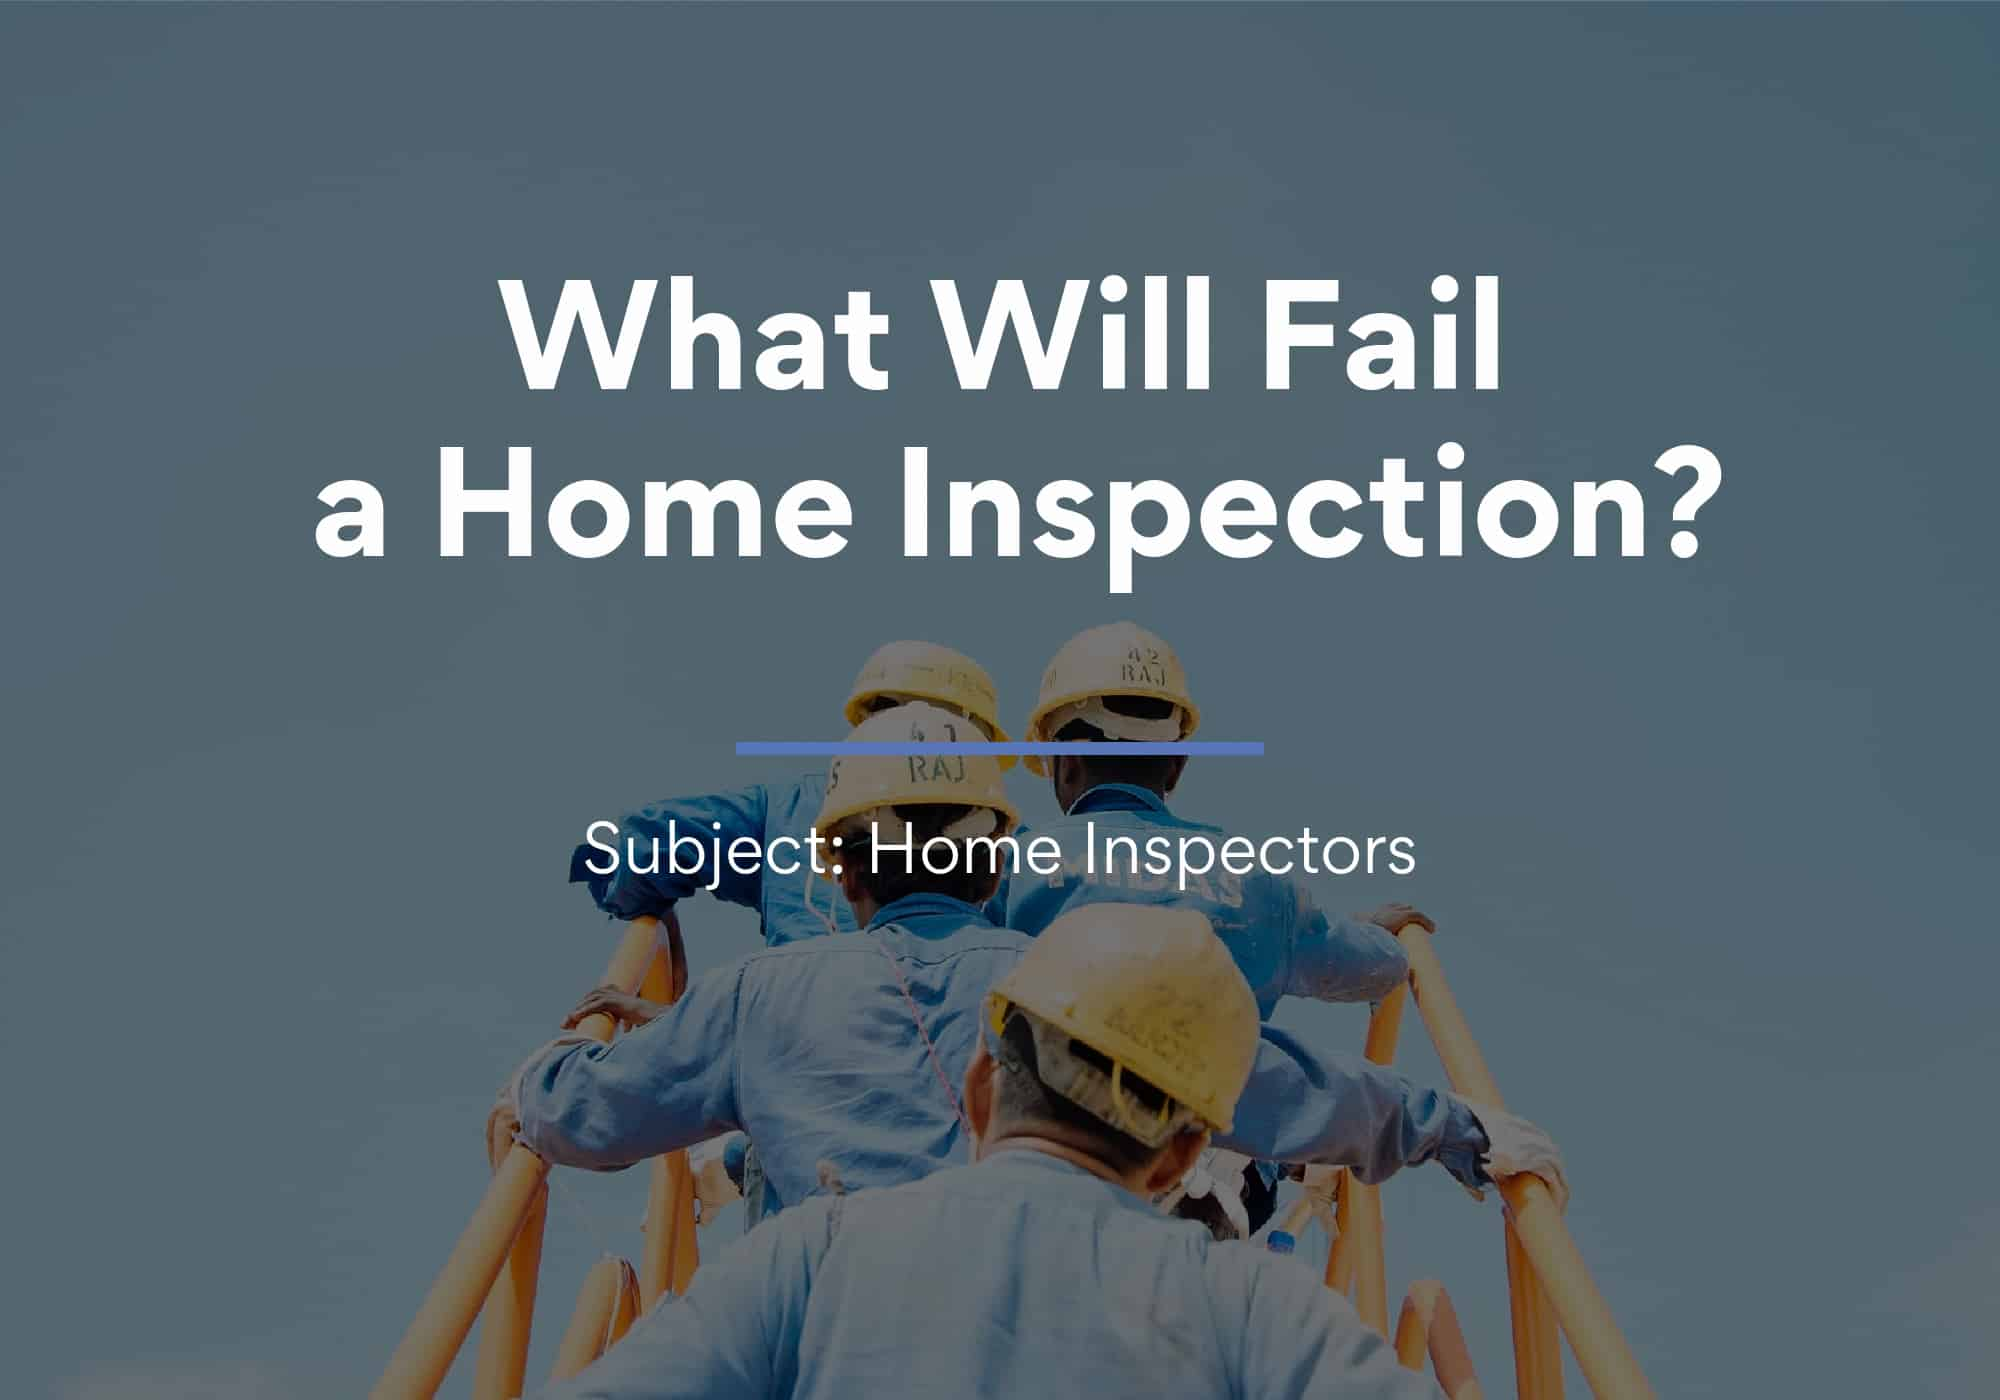 What Will Fail a Home Inspection?